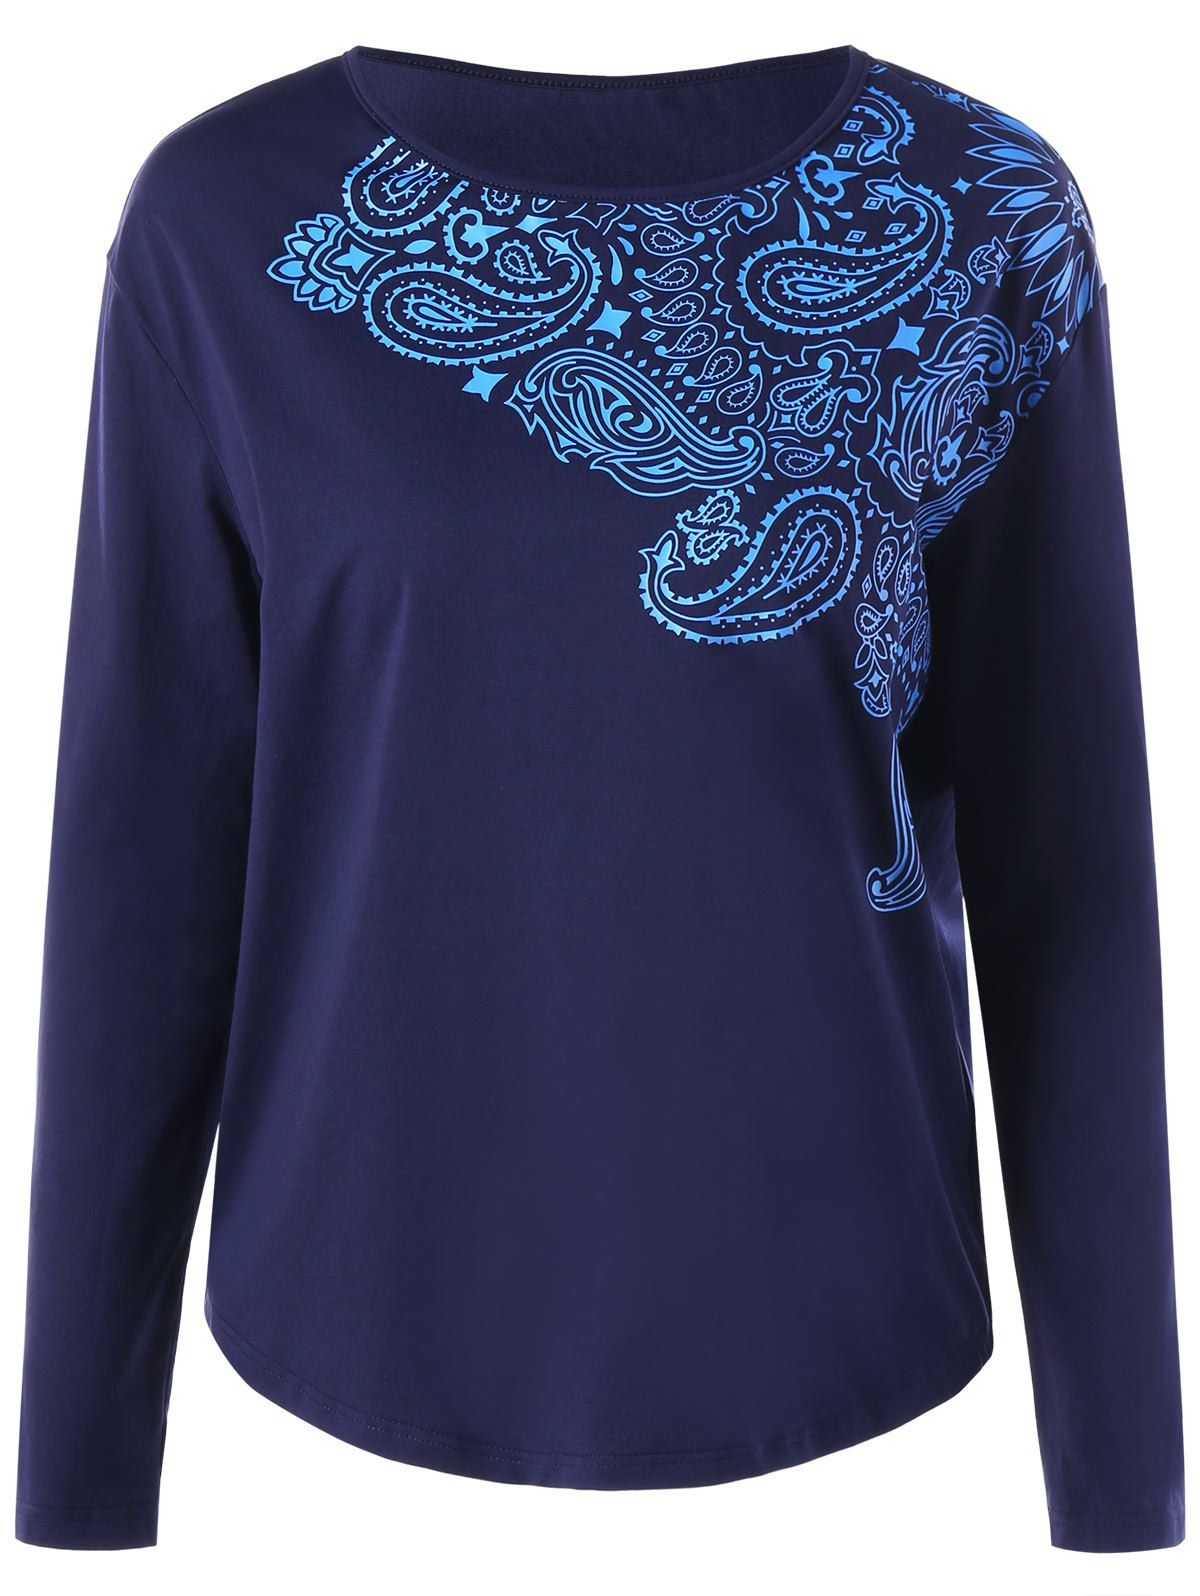 Paisley Print Long Sleeve Top - DEEP BLUE L